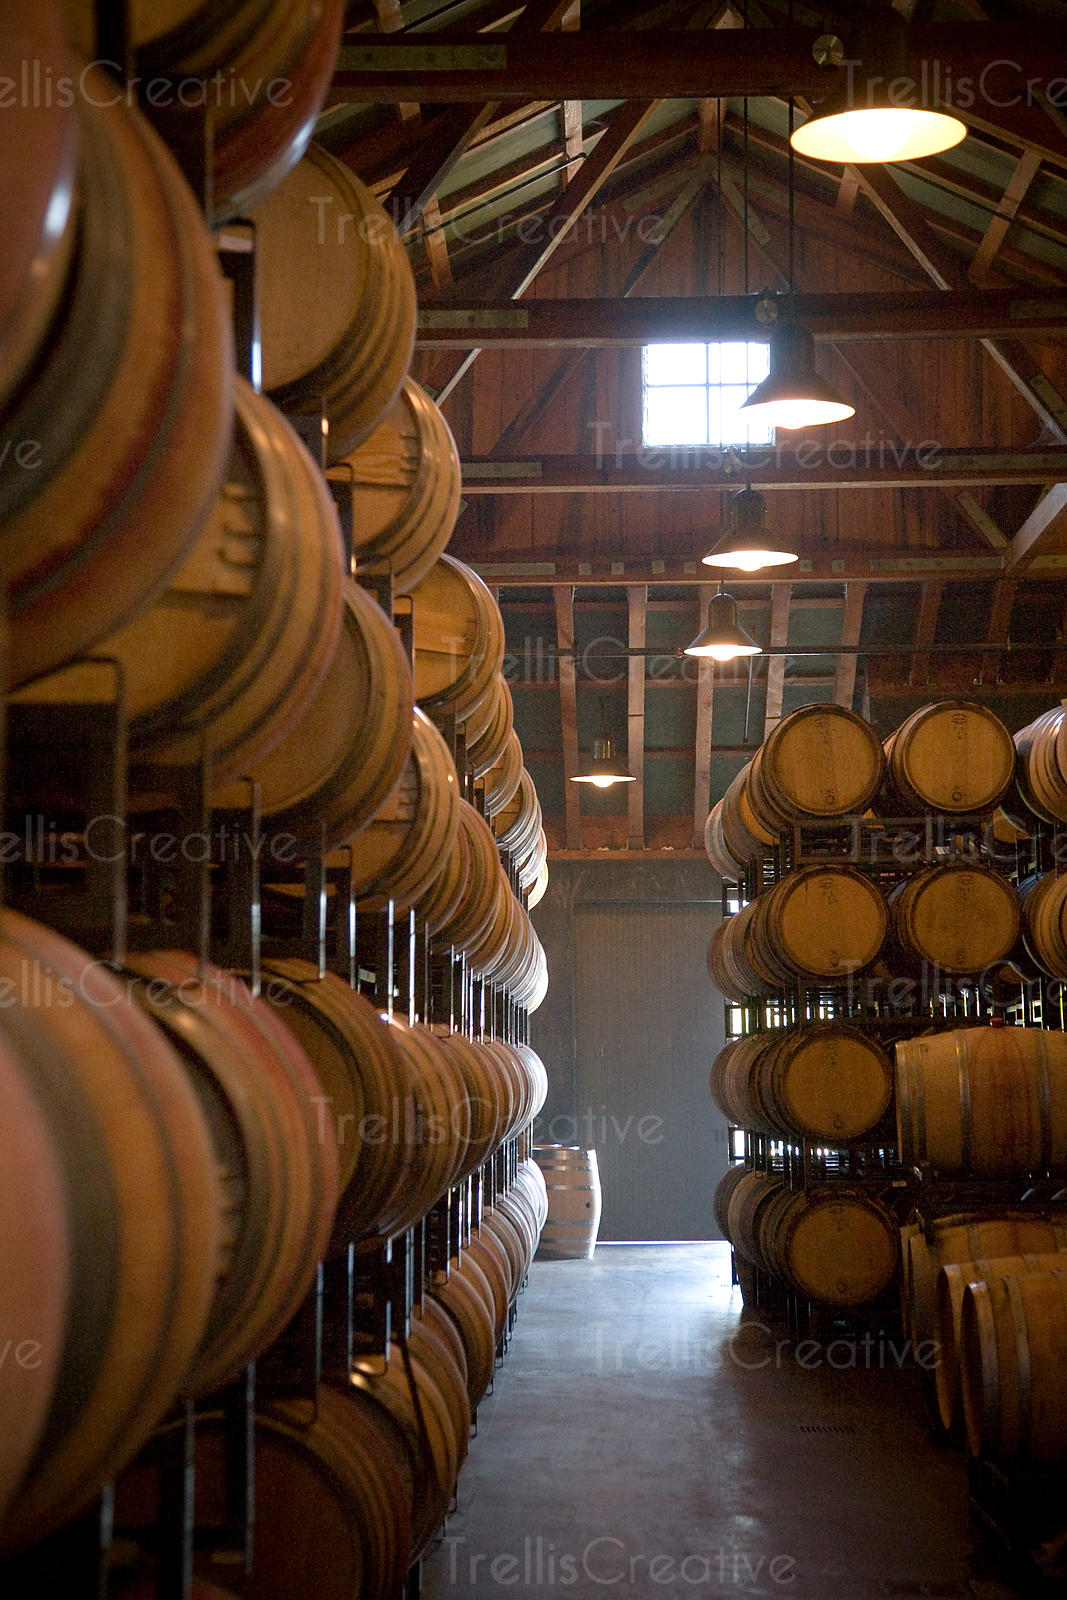 Sunlight spills into a winery barrel cellar